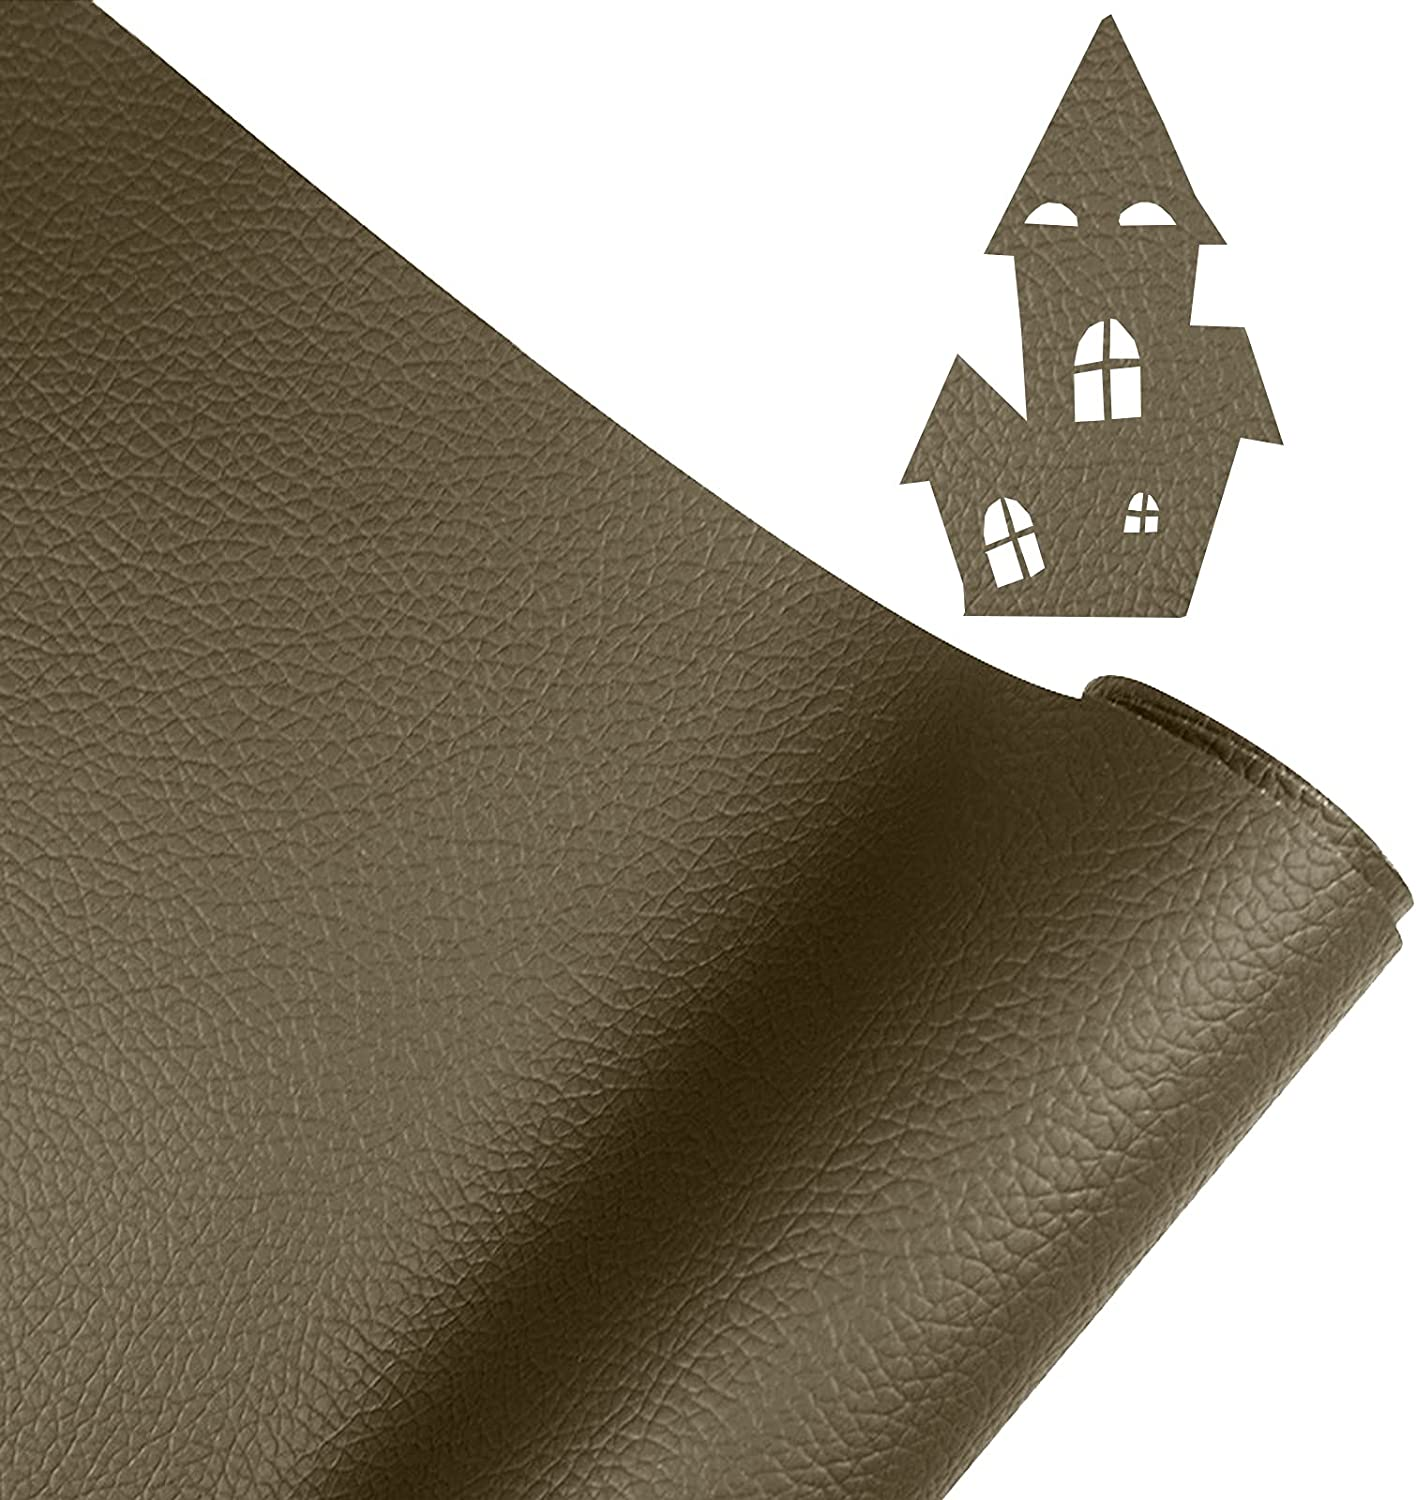 Save Award money Leather Repair Patch Kit for Self-Adhe 20x55 Large Inch Couches